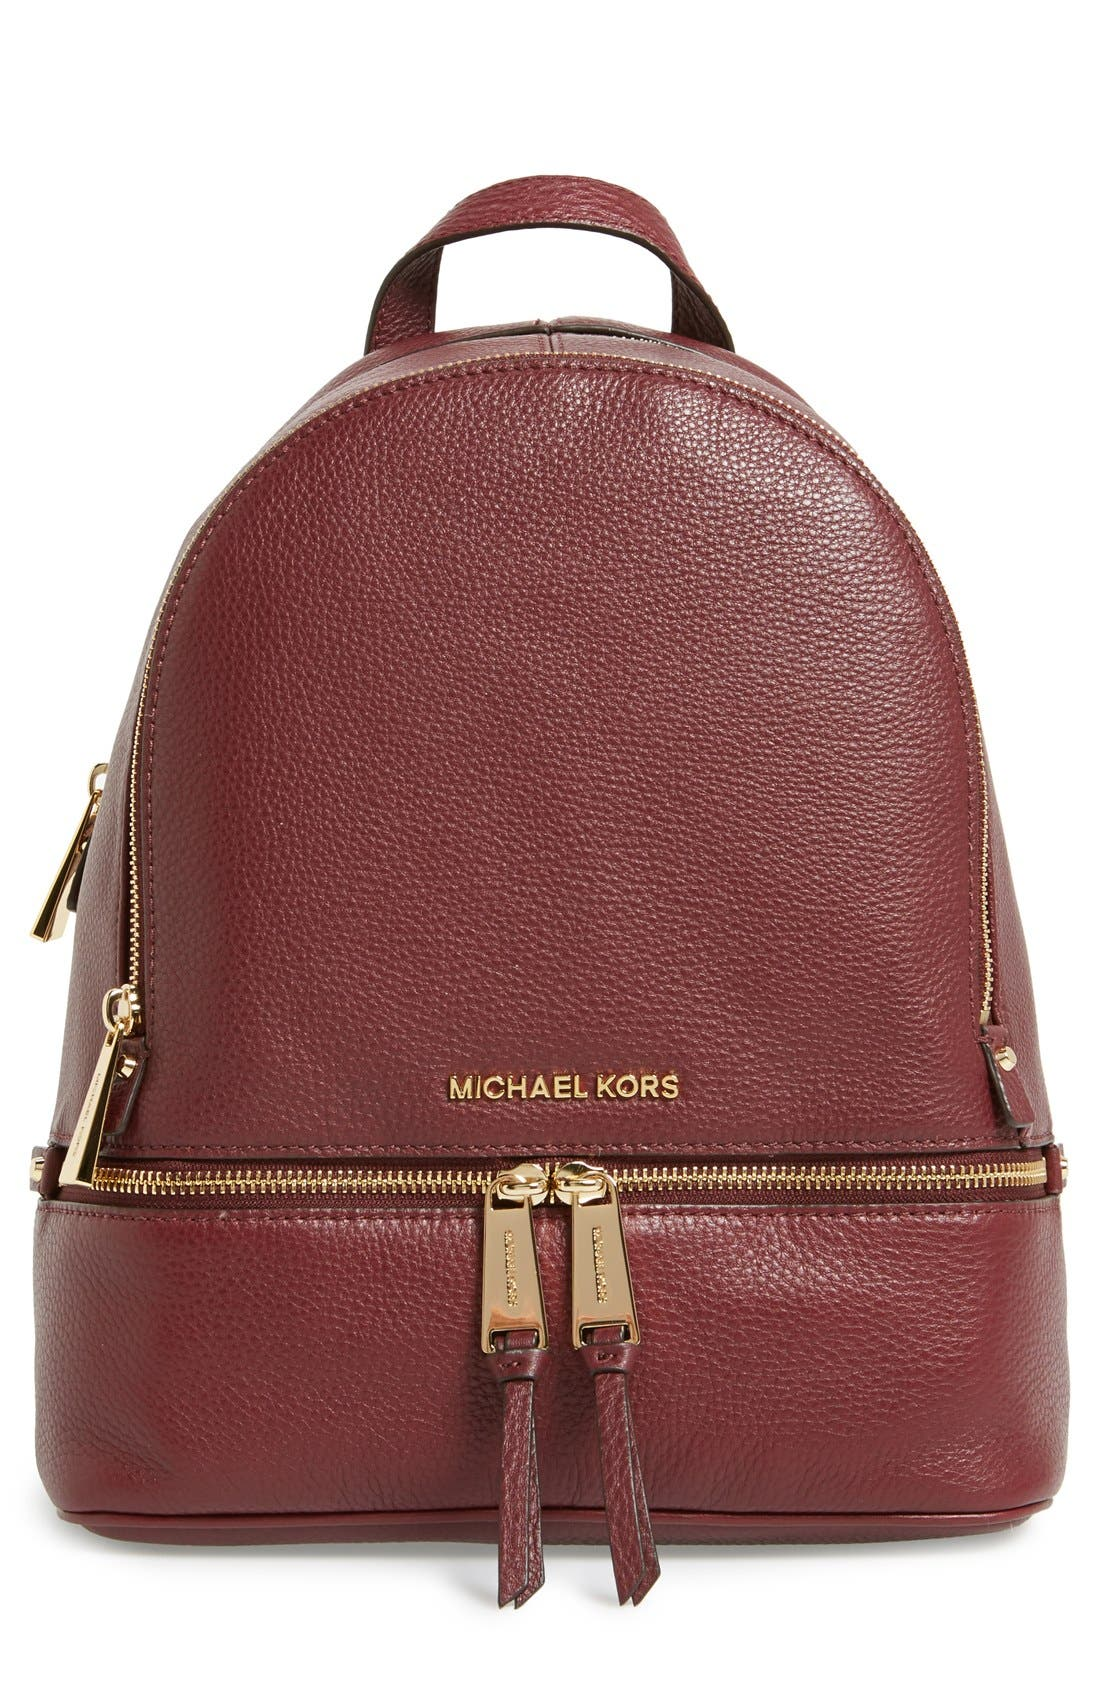 'Extra Small Rhea Zip' Leather Backpack,                             Main thumbnail 11, color,